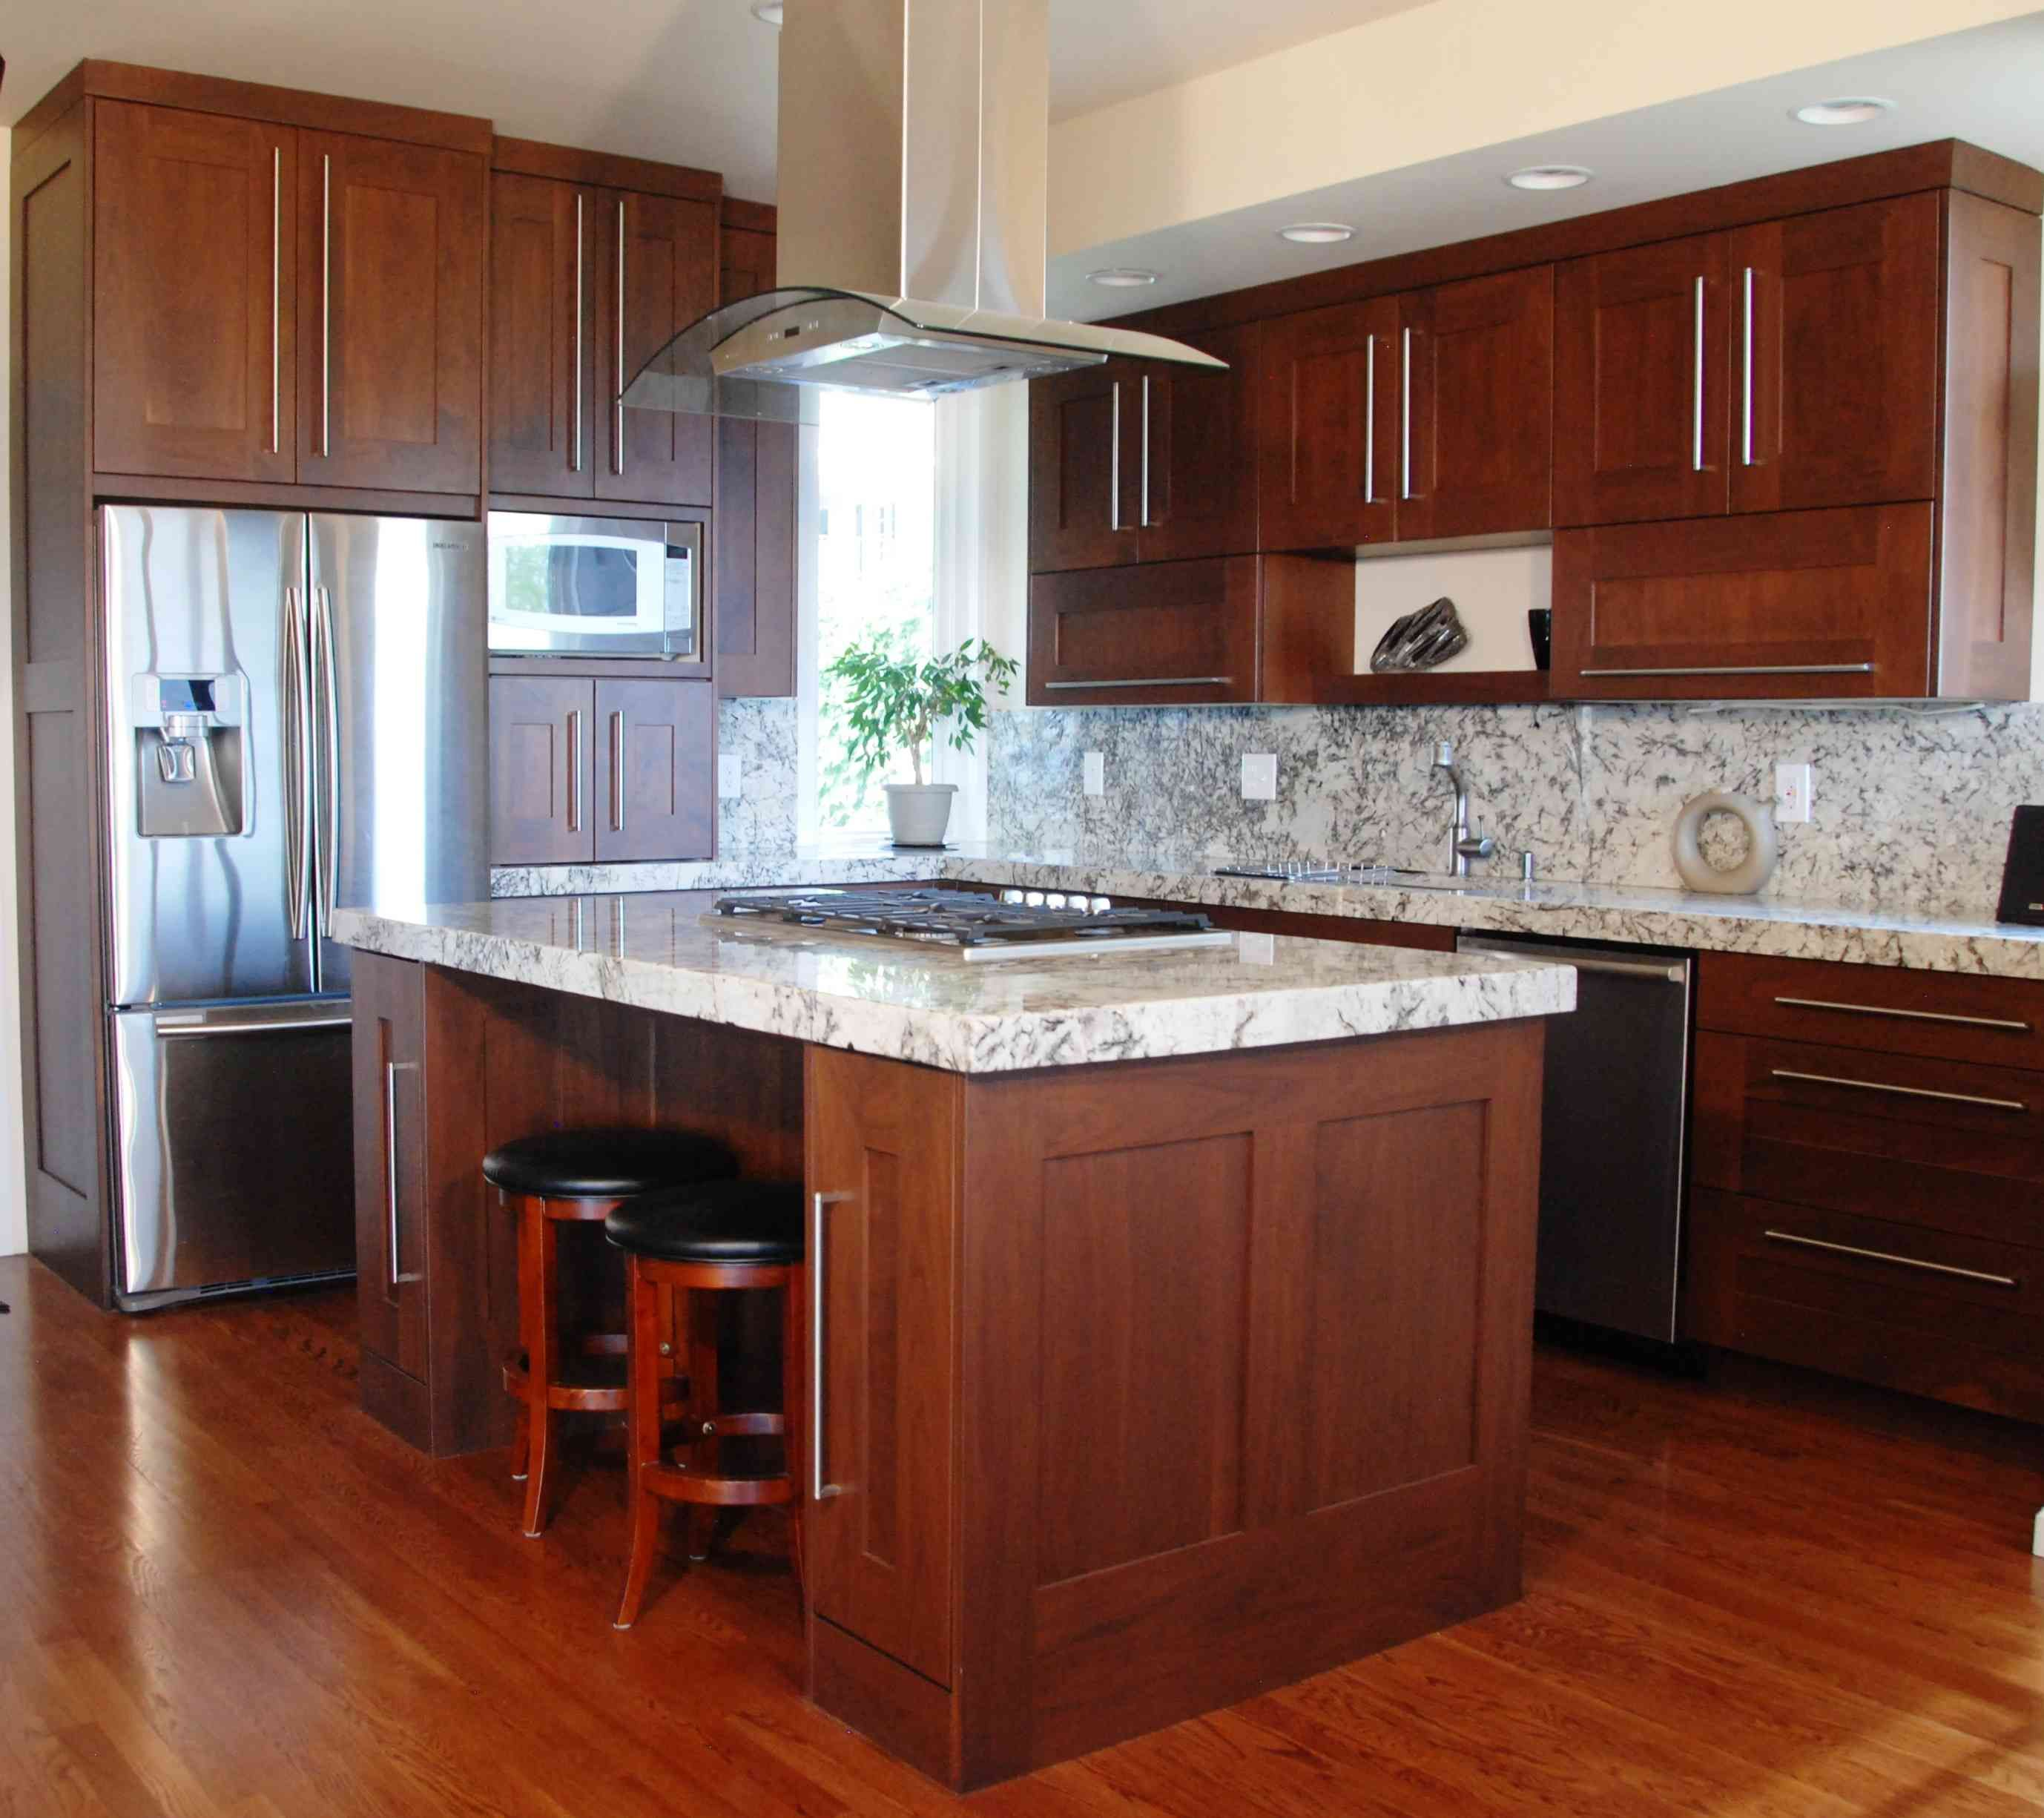 cherry wood kitchen island gourmet appliances cabinets with white granite counters and